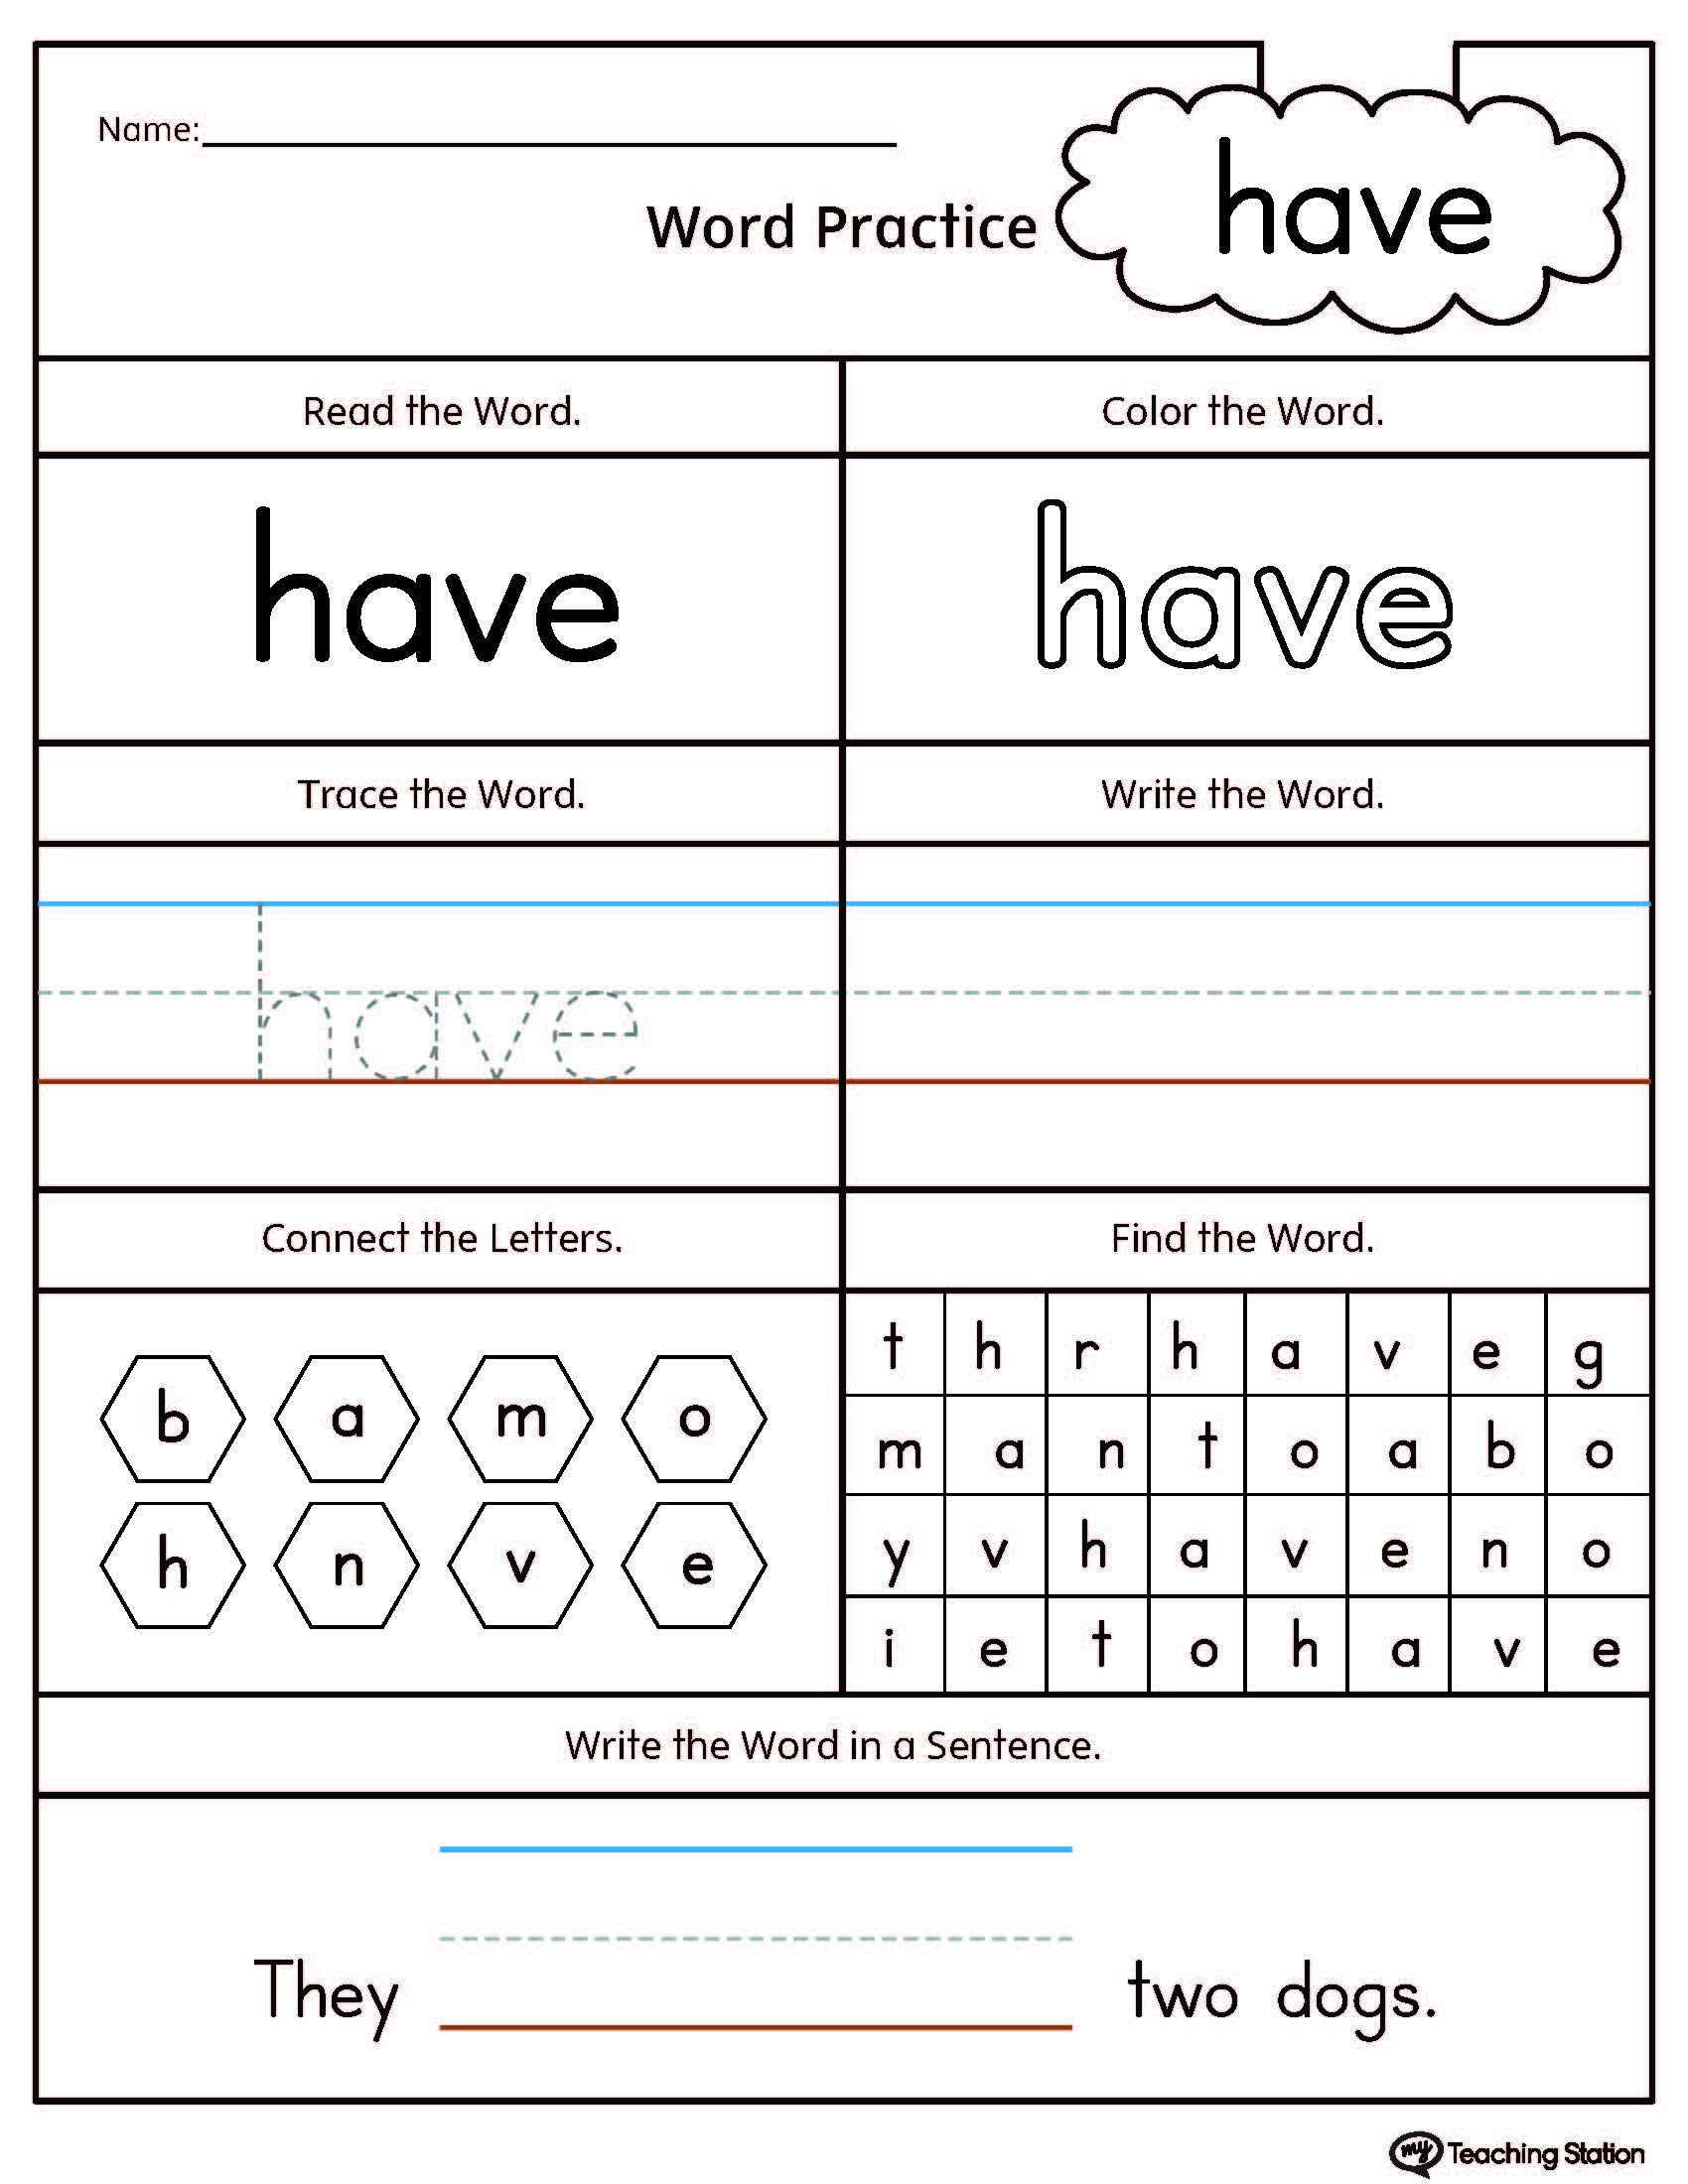 worksheet High Frequency Words Worksheets high frequency words printable worksheets myteachingstation com word have worksheet